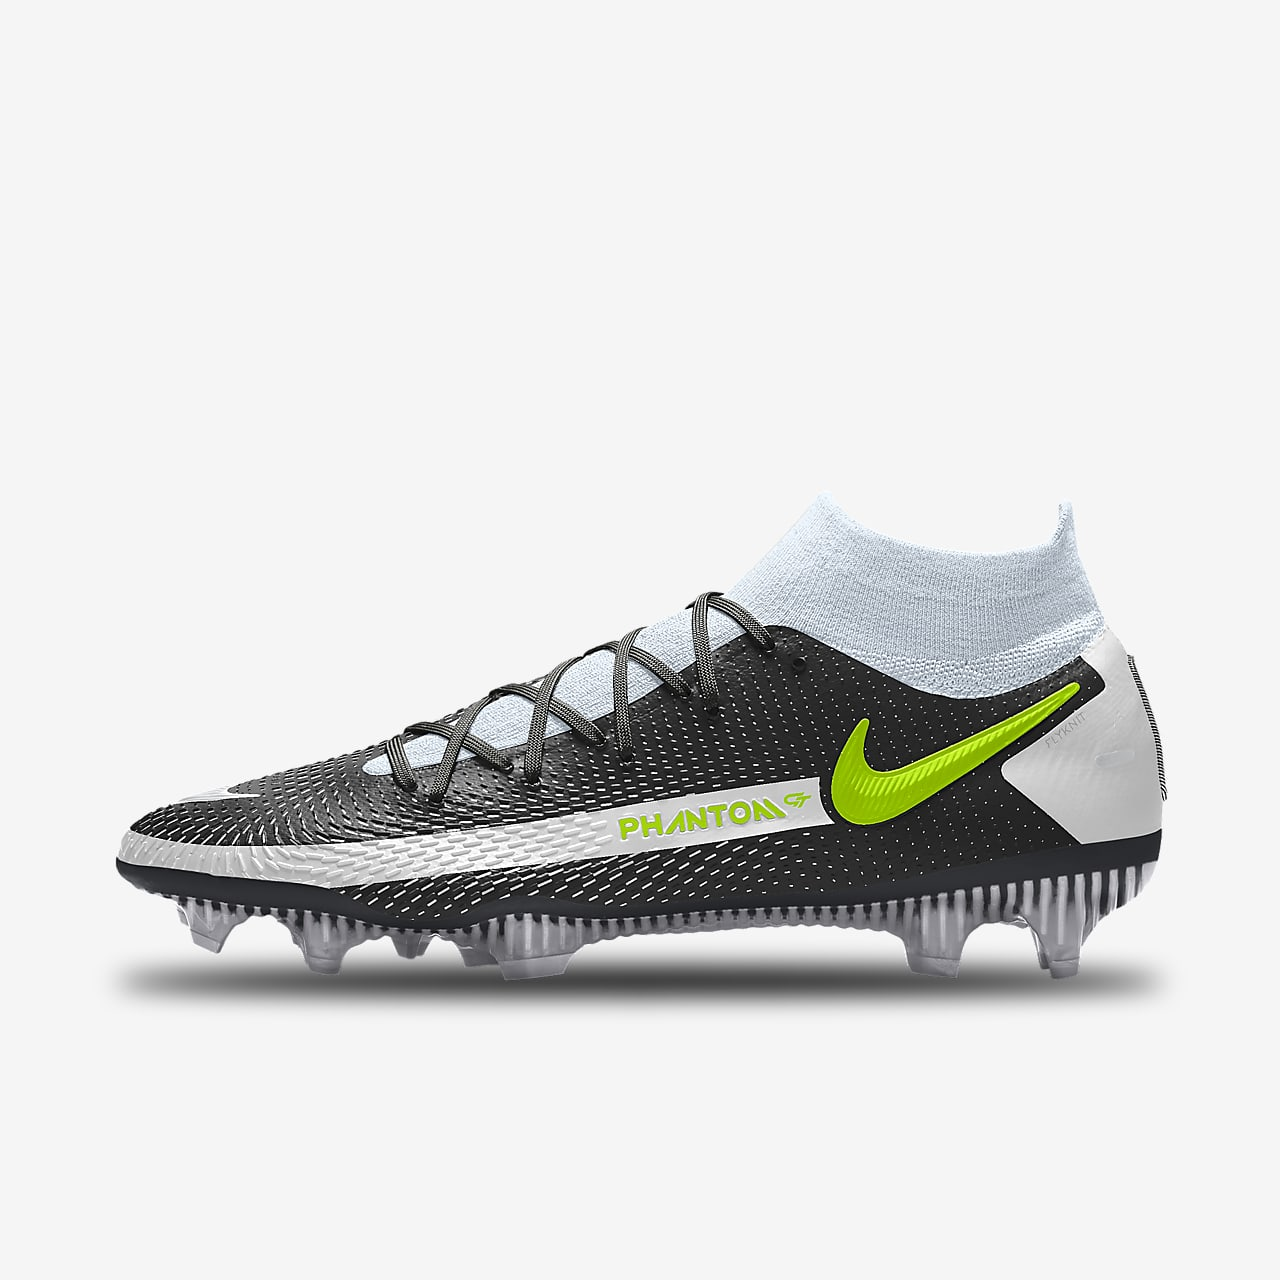 Nike Phantom GT Elite By You Botas de fútbol para terreno firme personalizables